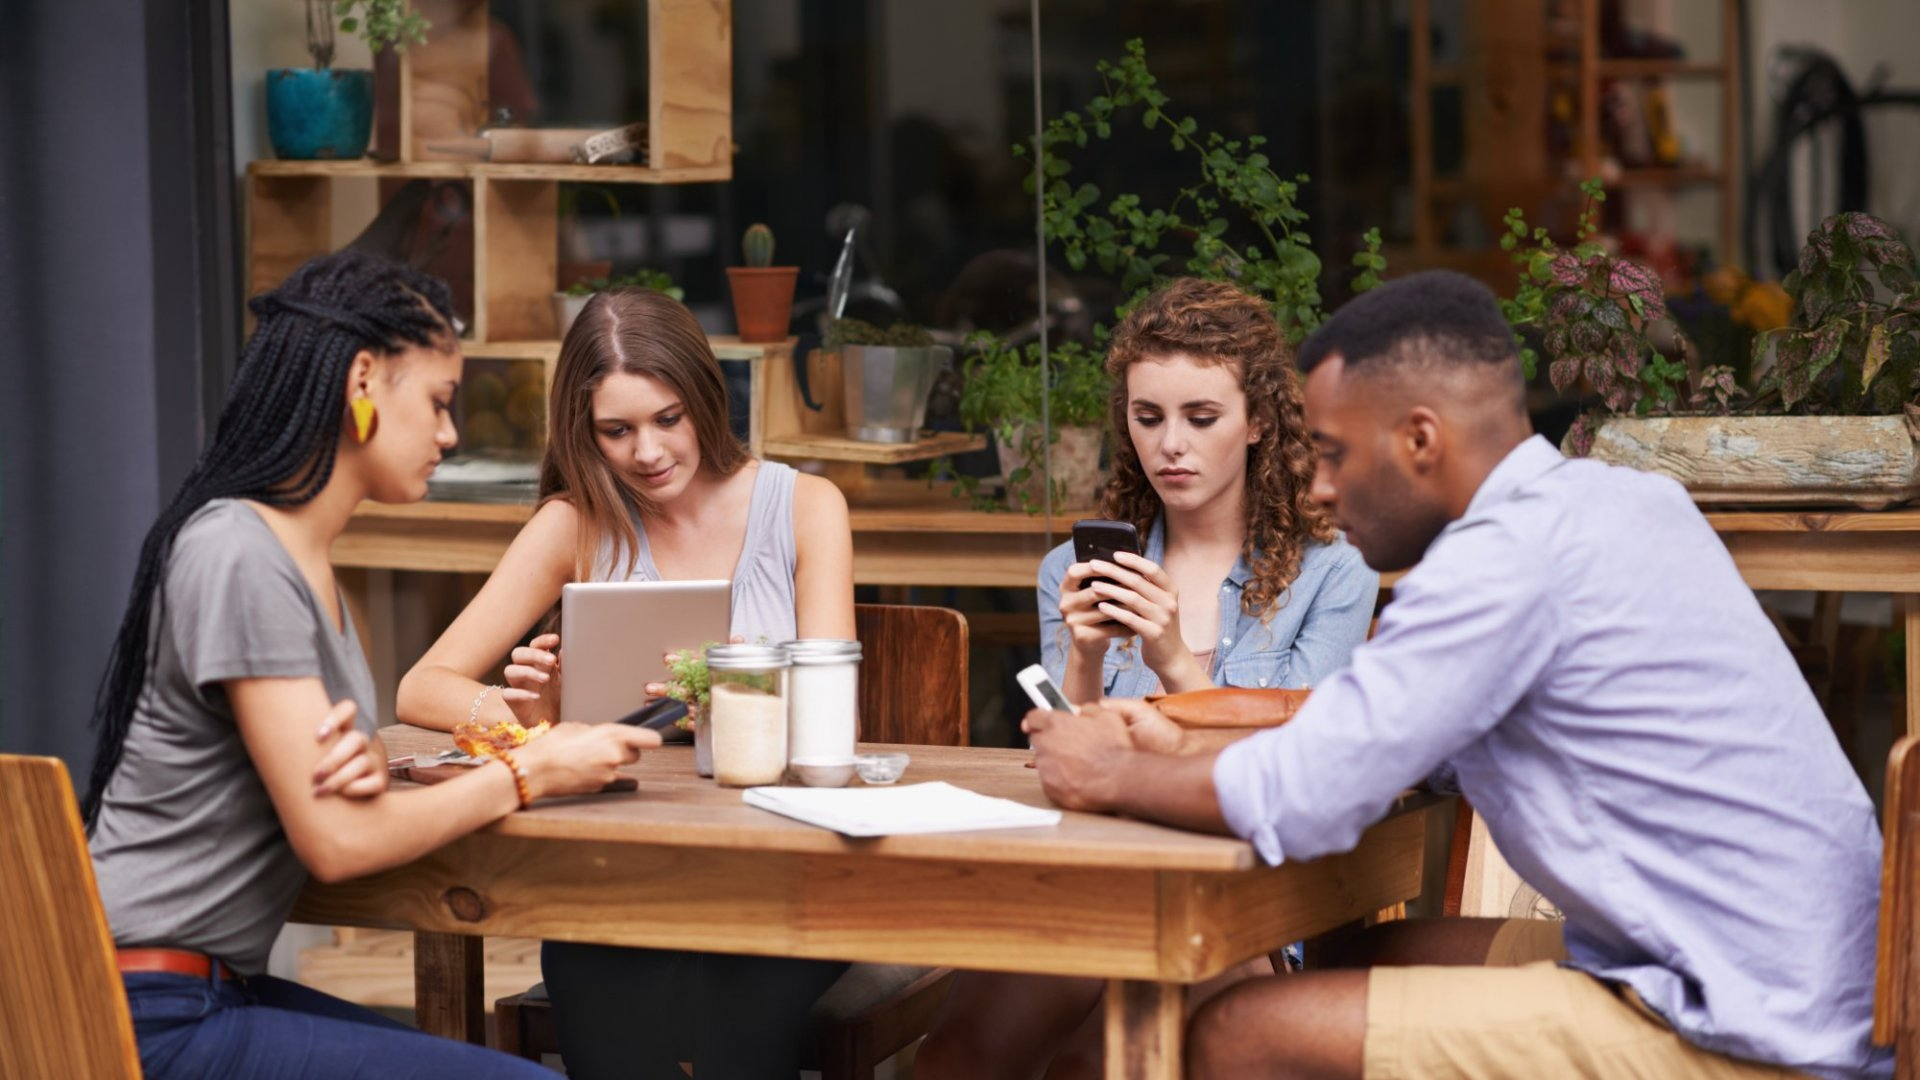 These 4 Things Show That Millennial Small Business Owners Are Unlike Any Other Generation